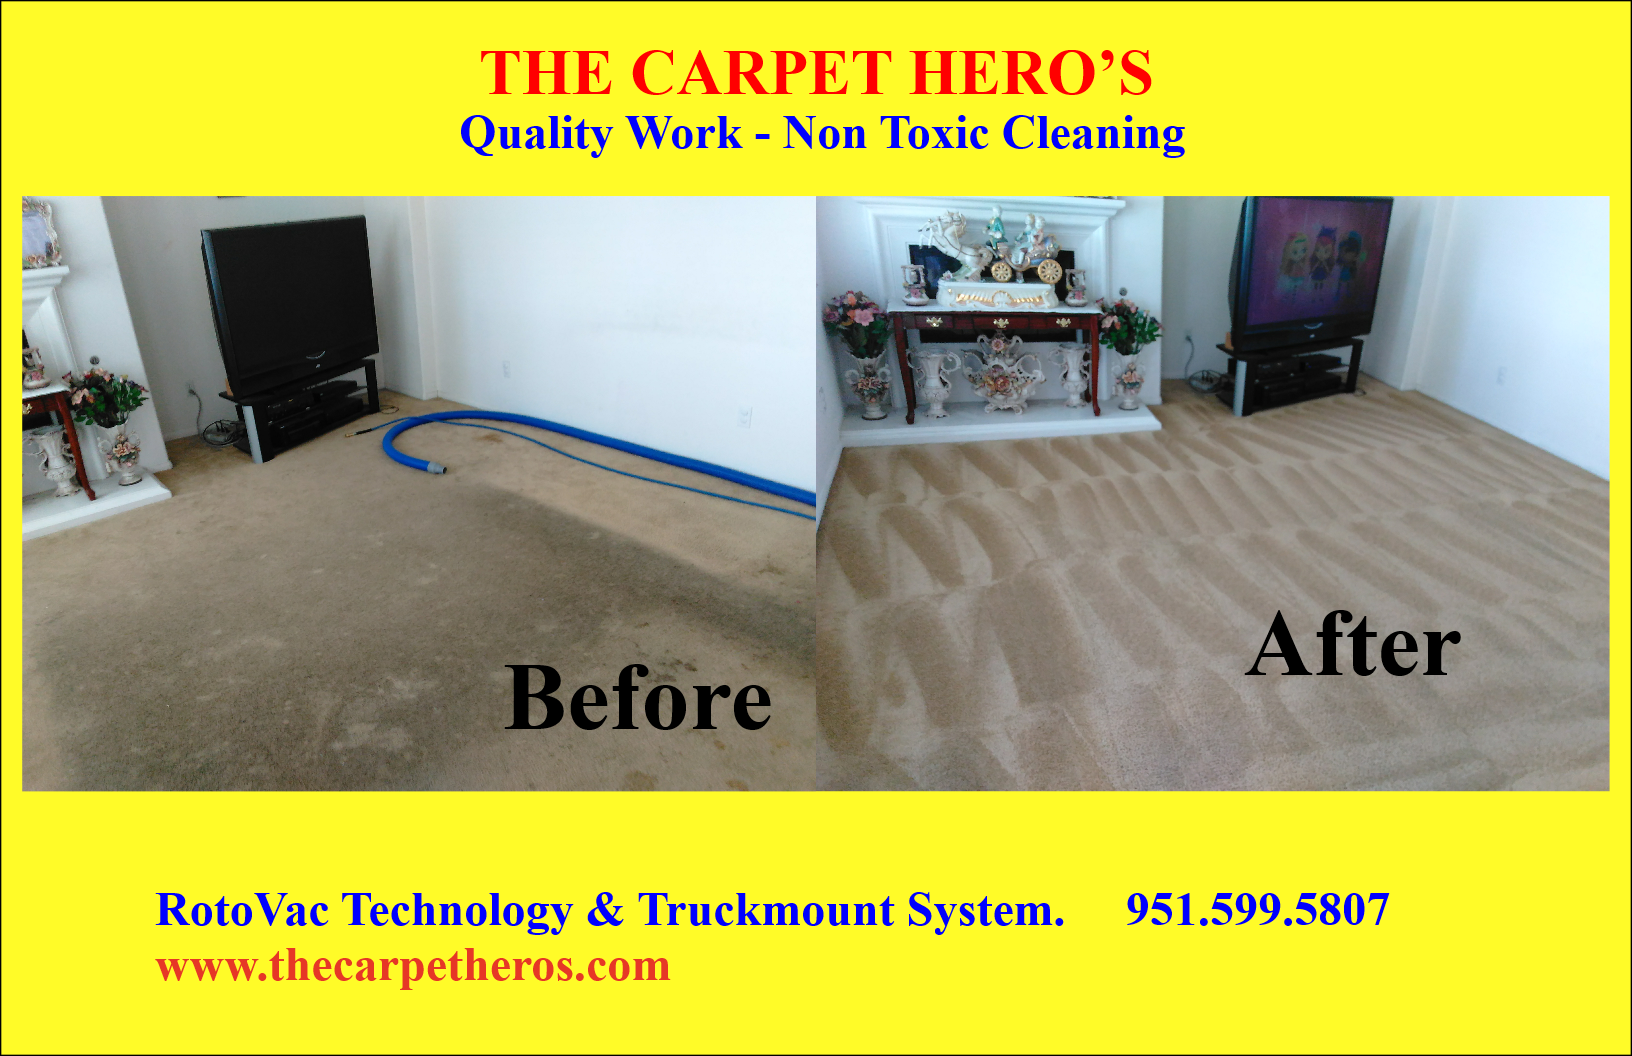 Carpet Cleaning in Temecula